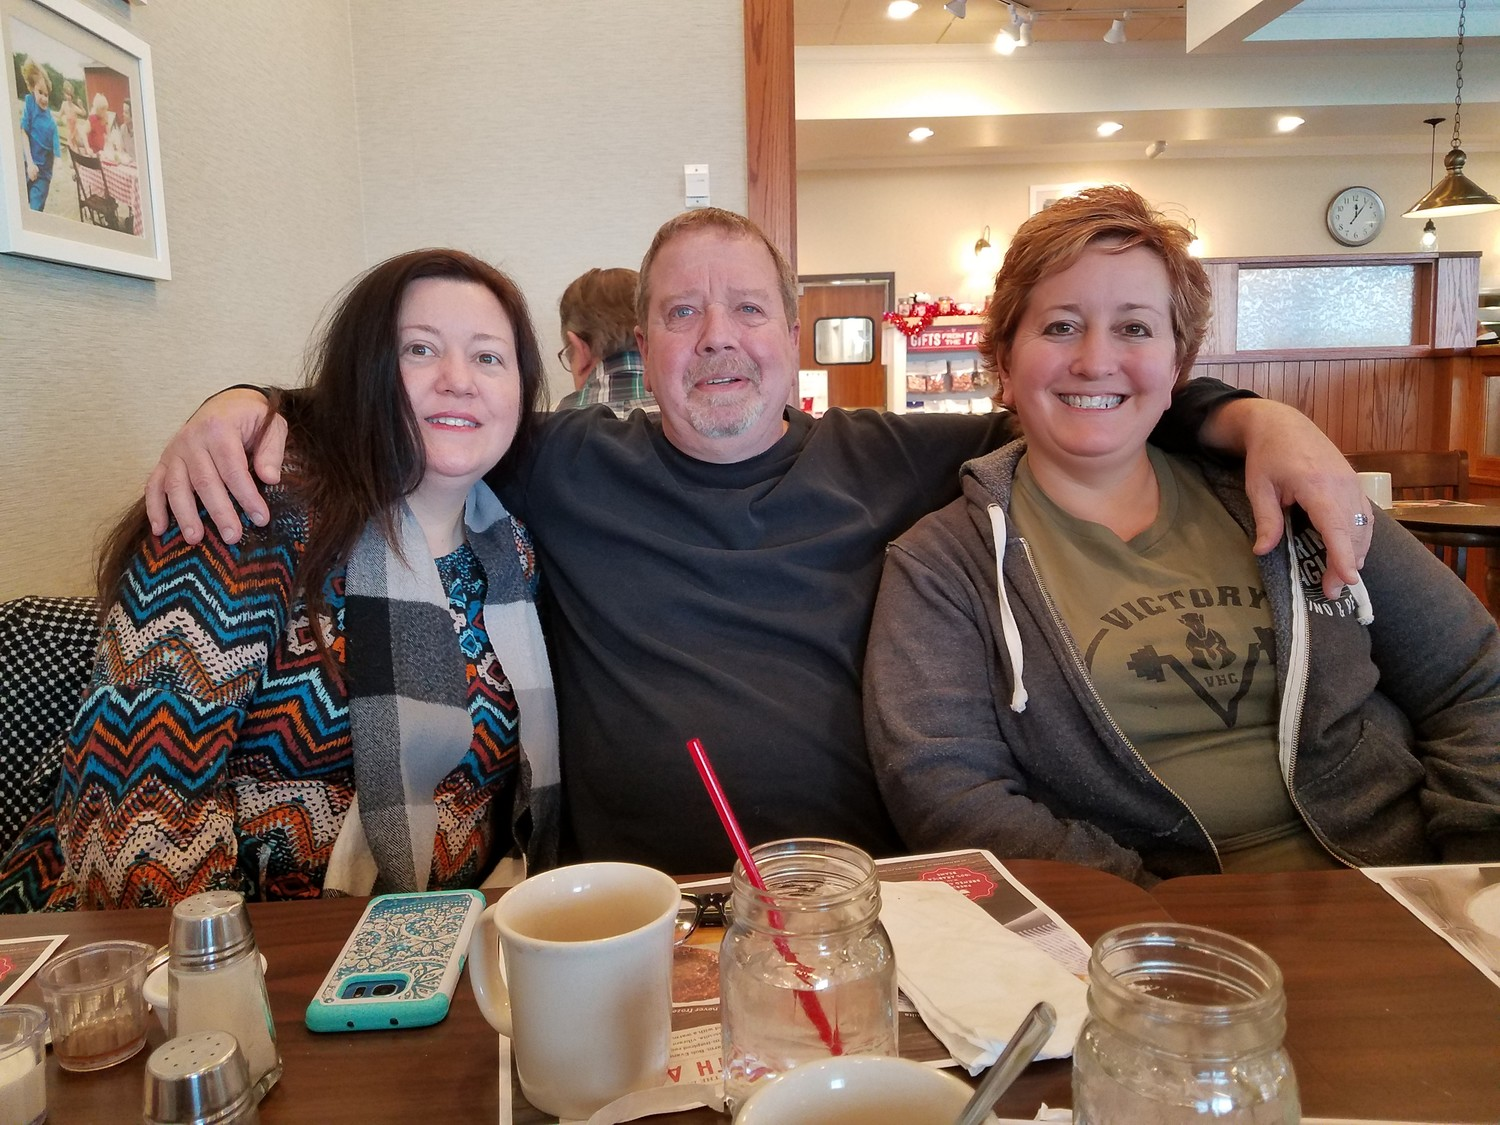 After decades of not knowing his biological family, Scheurer recently met his siblings for the first time — Jane Hunyor, left, and Charlann Haener.